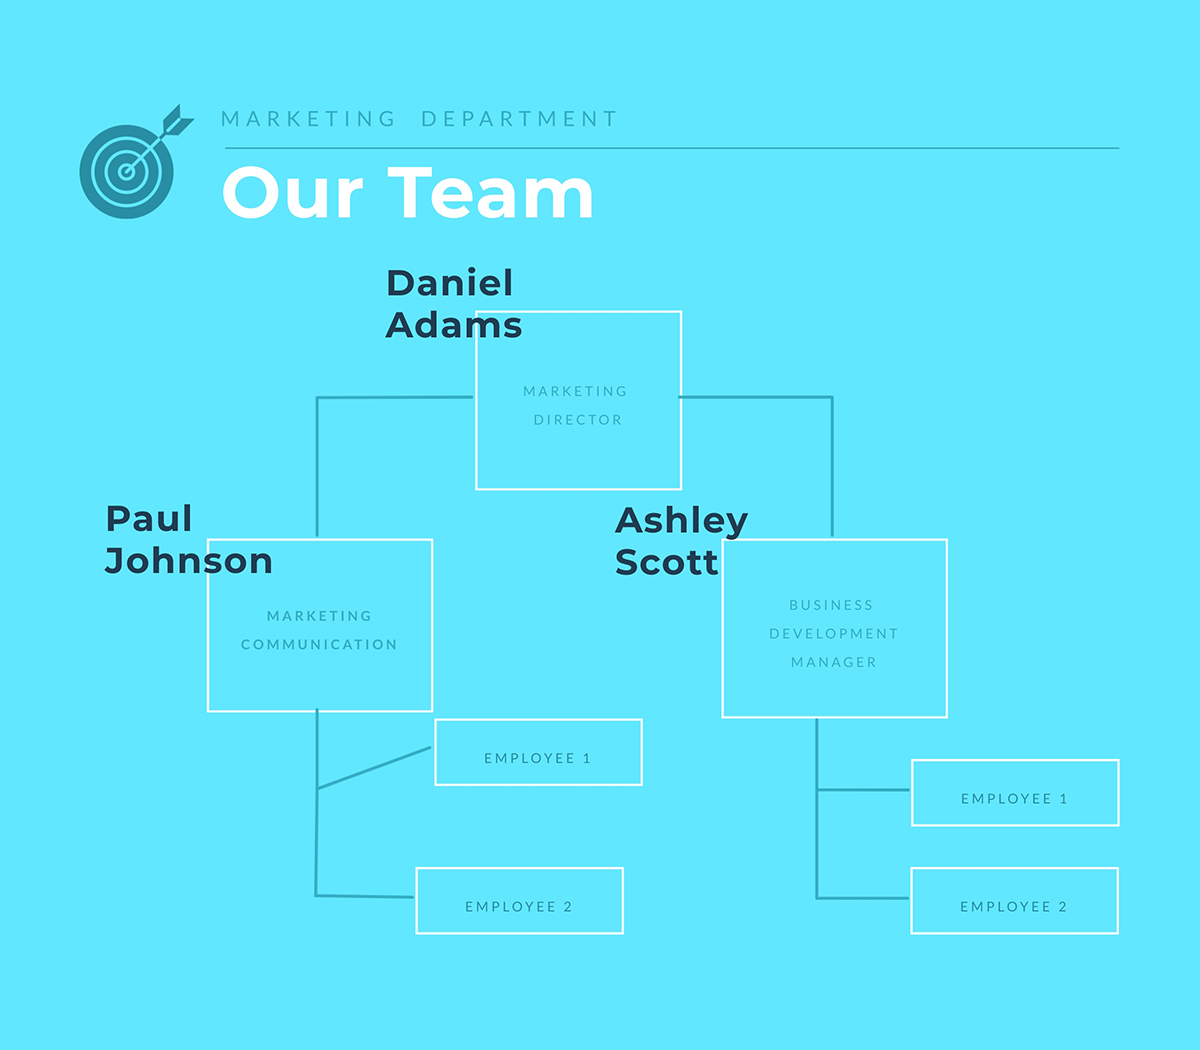 A marketing team organizational chart template available in Visme.